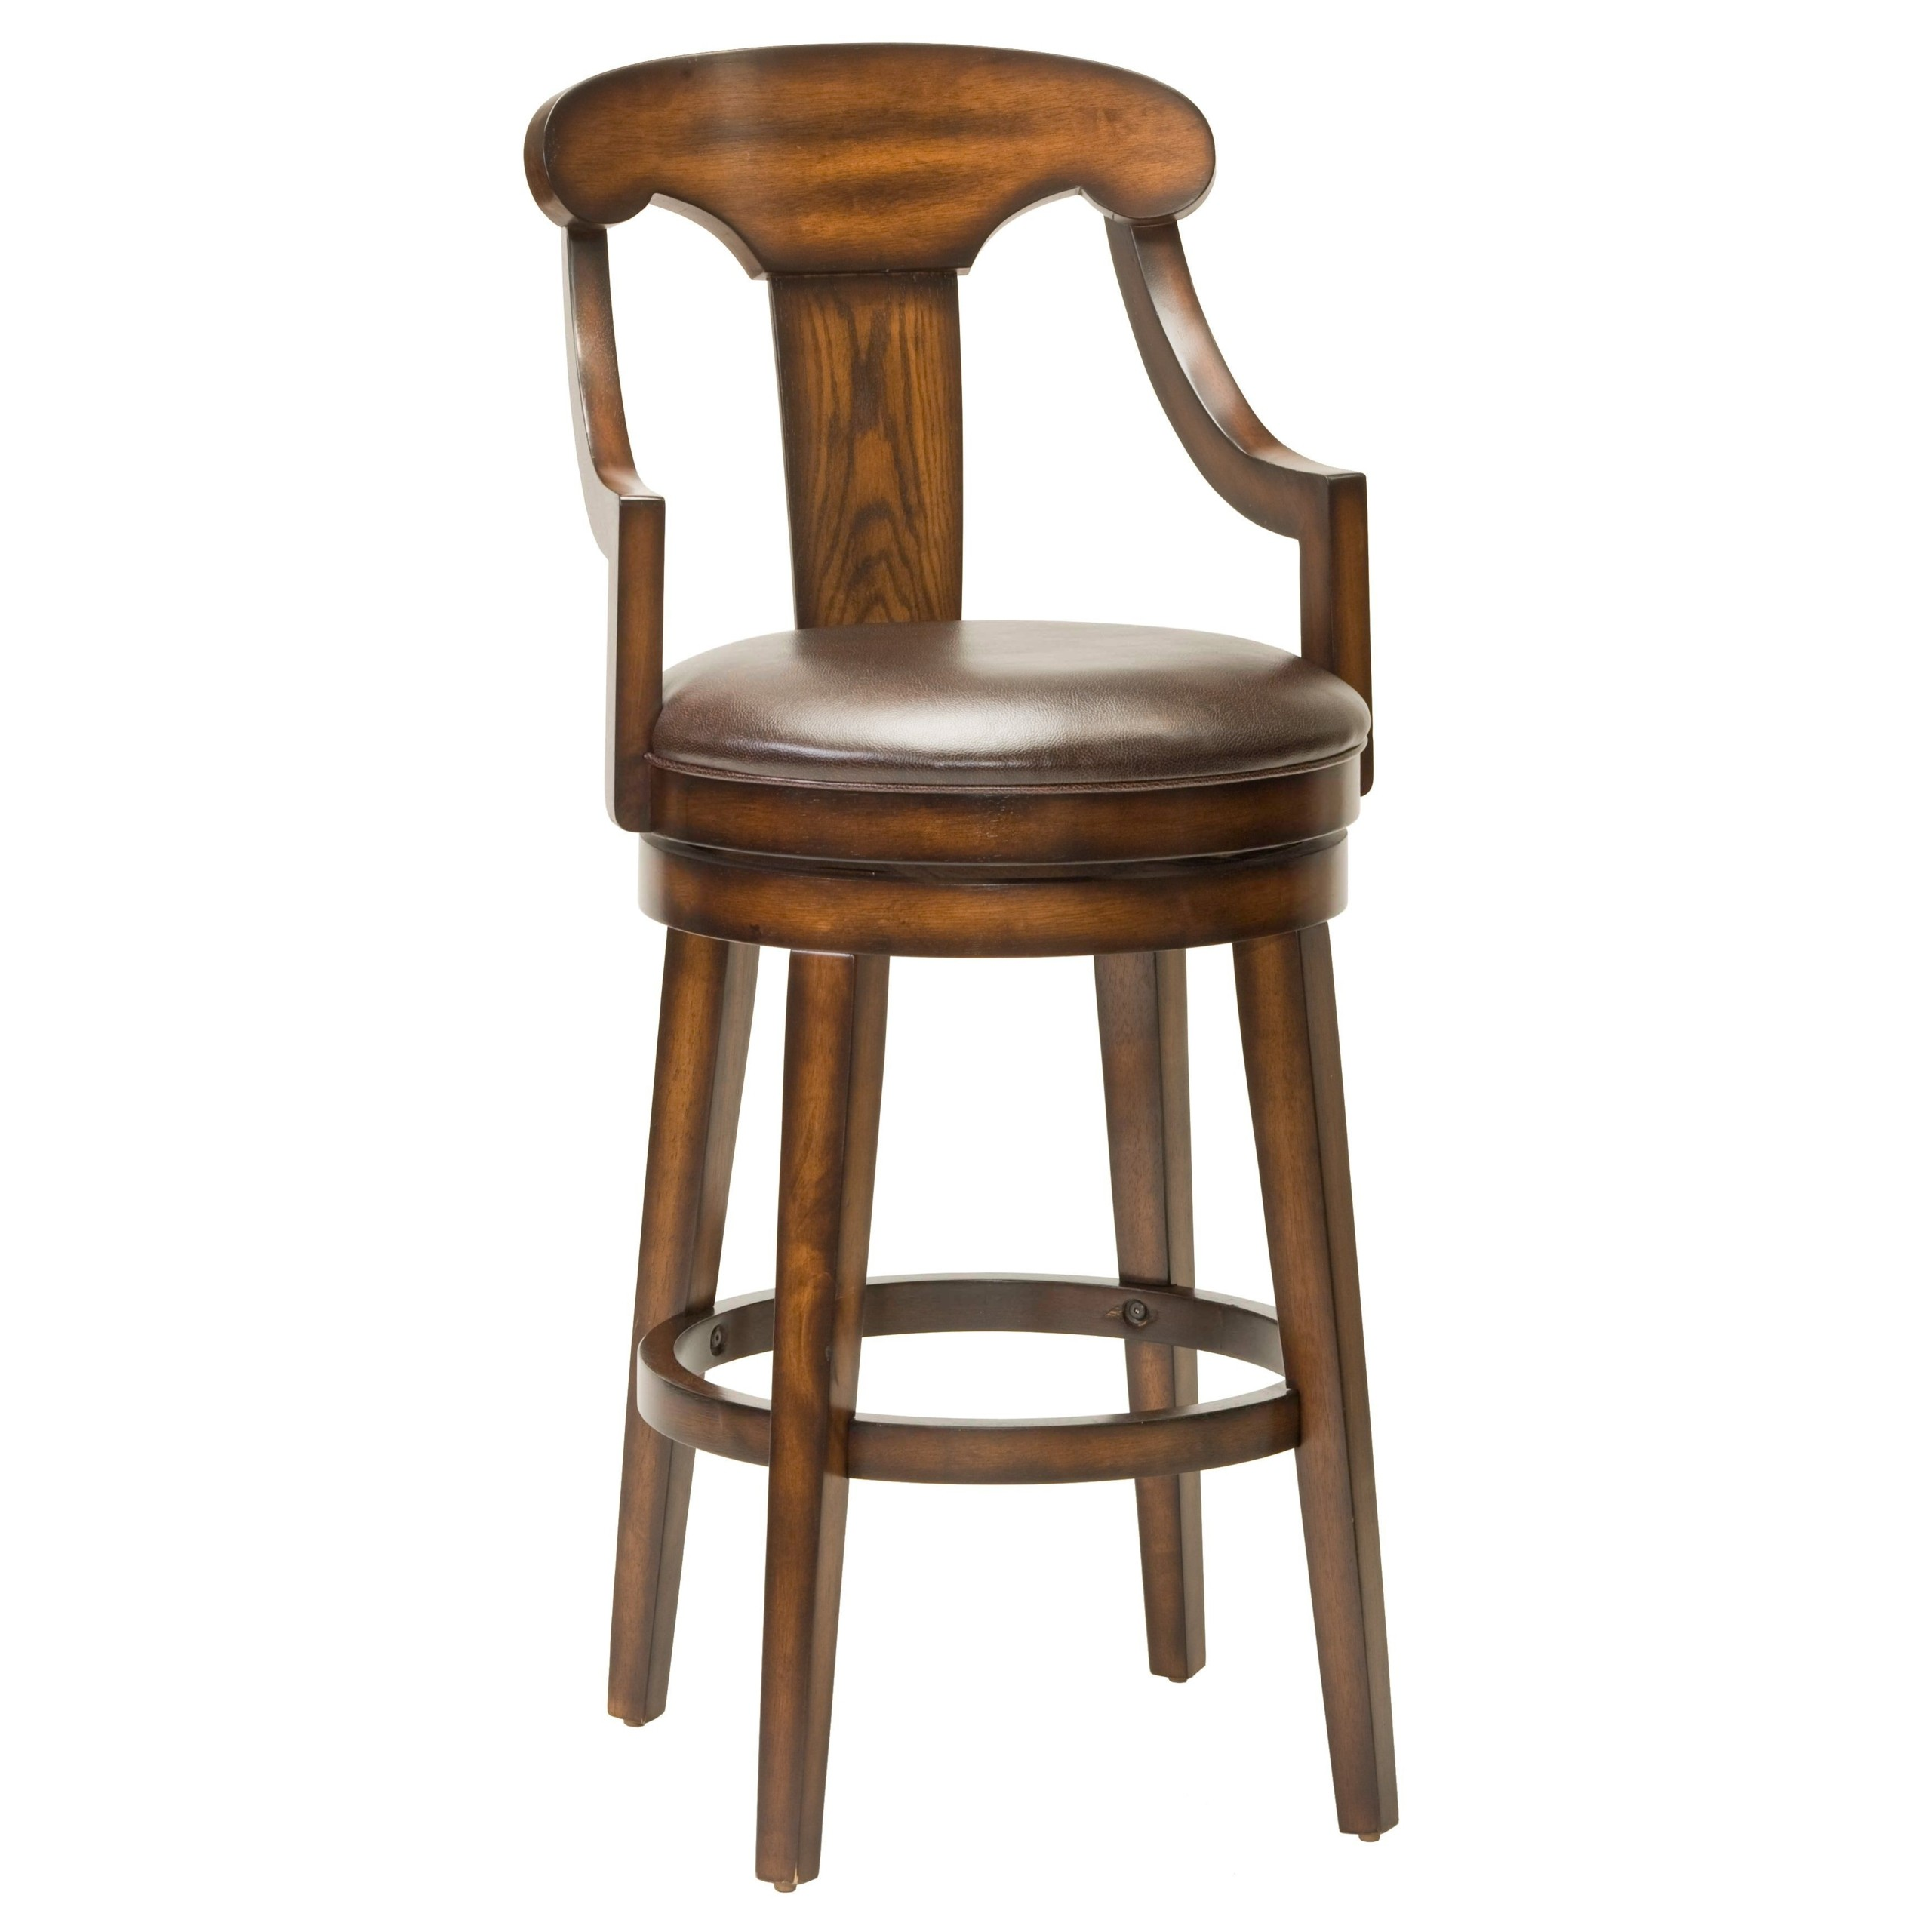 Gentil Hillsdale Furniture Upton 45.5 Inch Swivel Bar Stool, Rustic Oak Finish